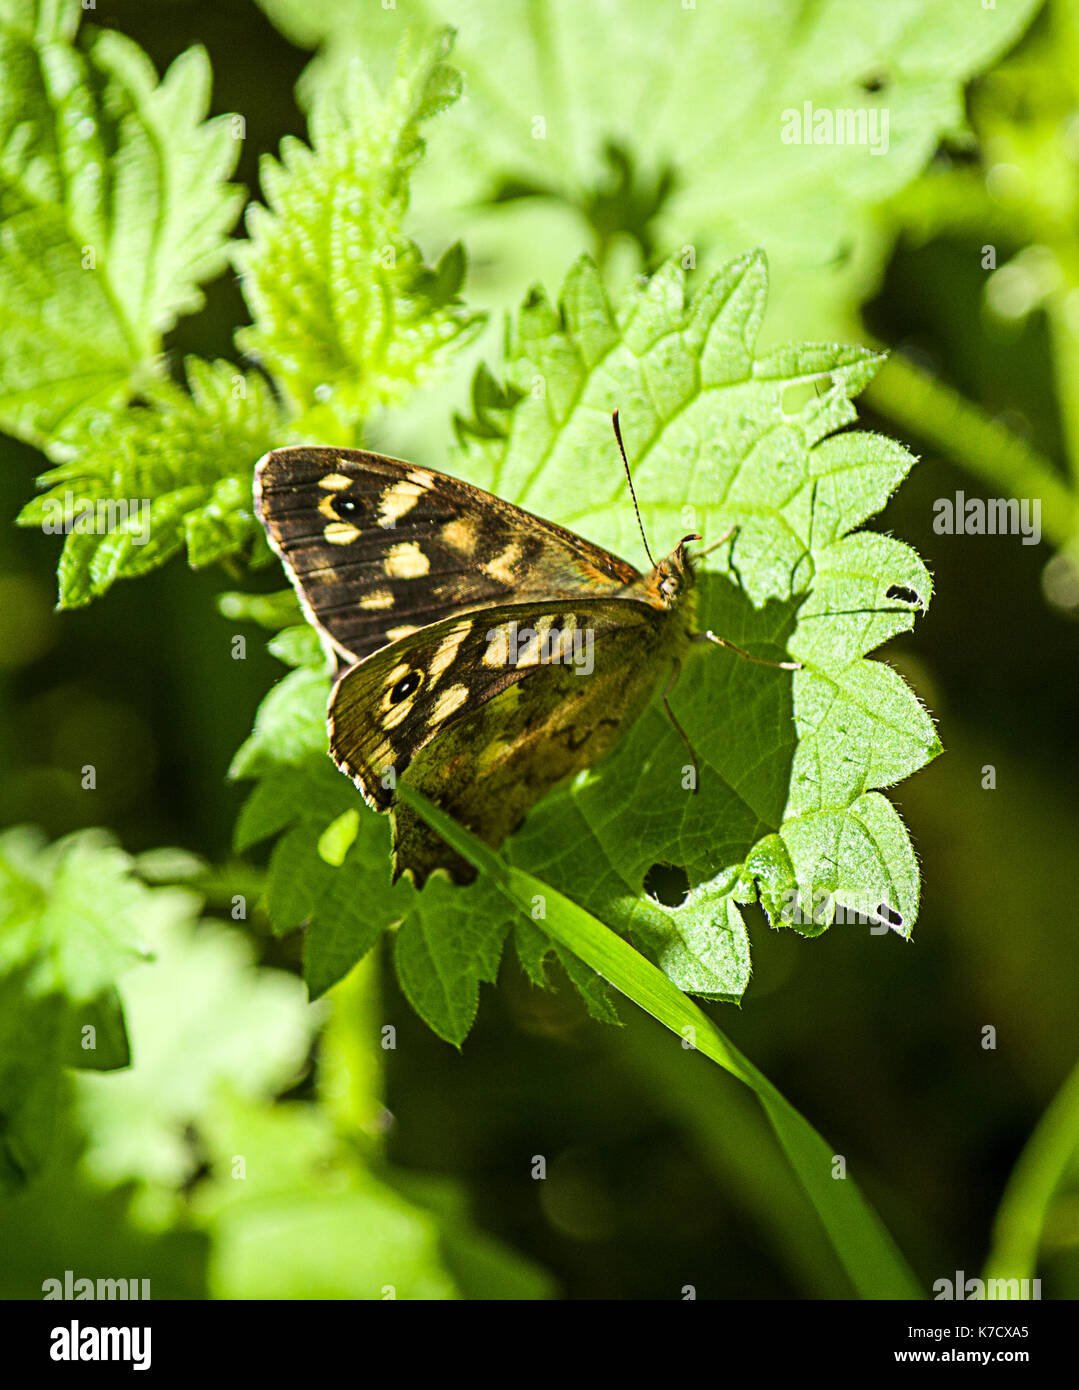 Male Speckled Wood Butterfly - Stock Image